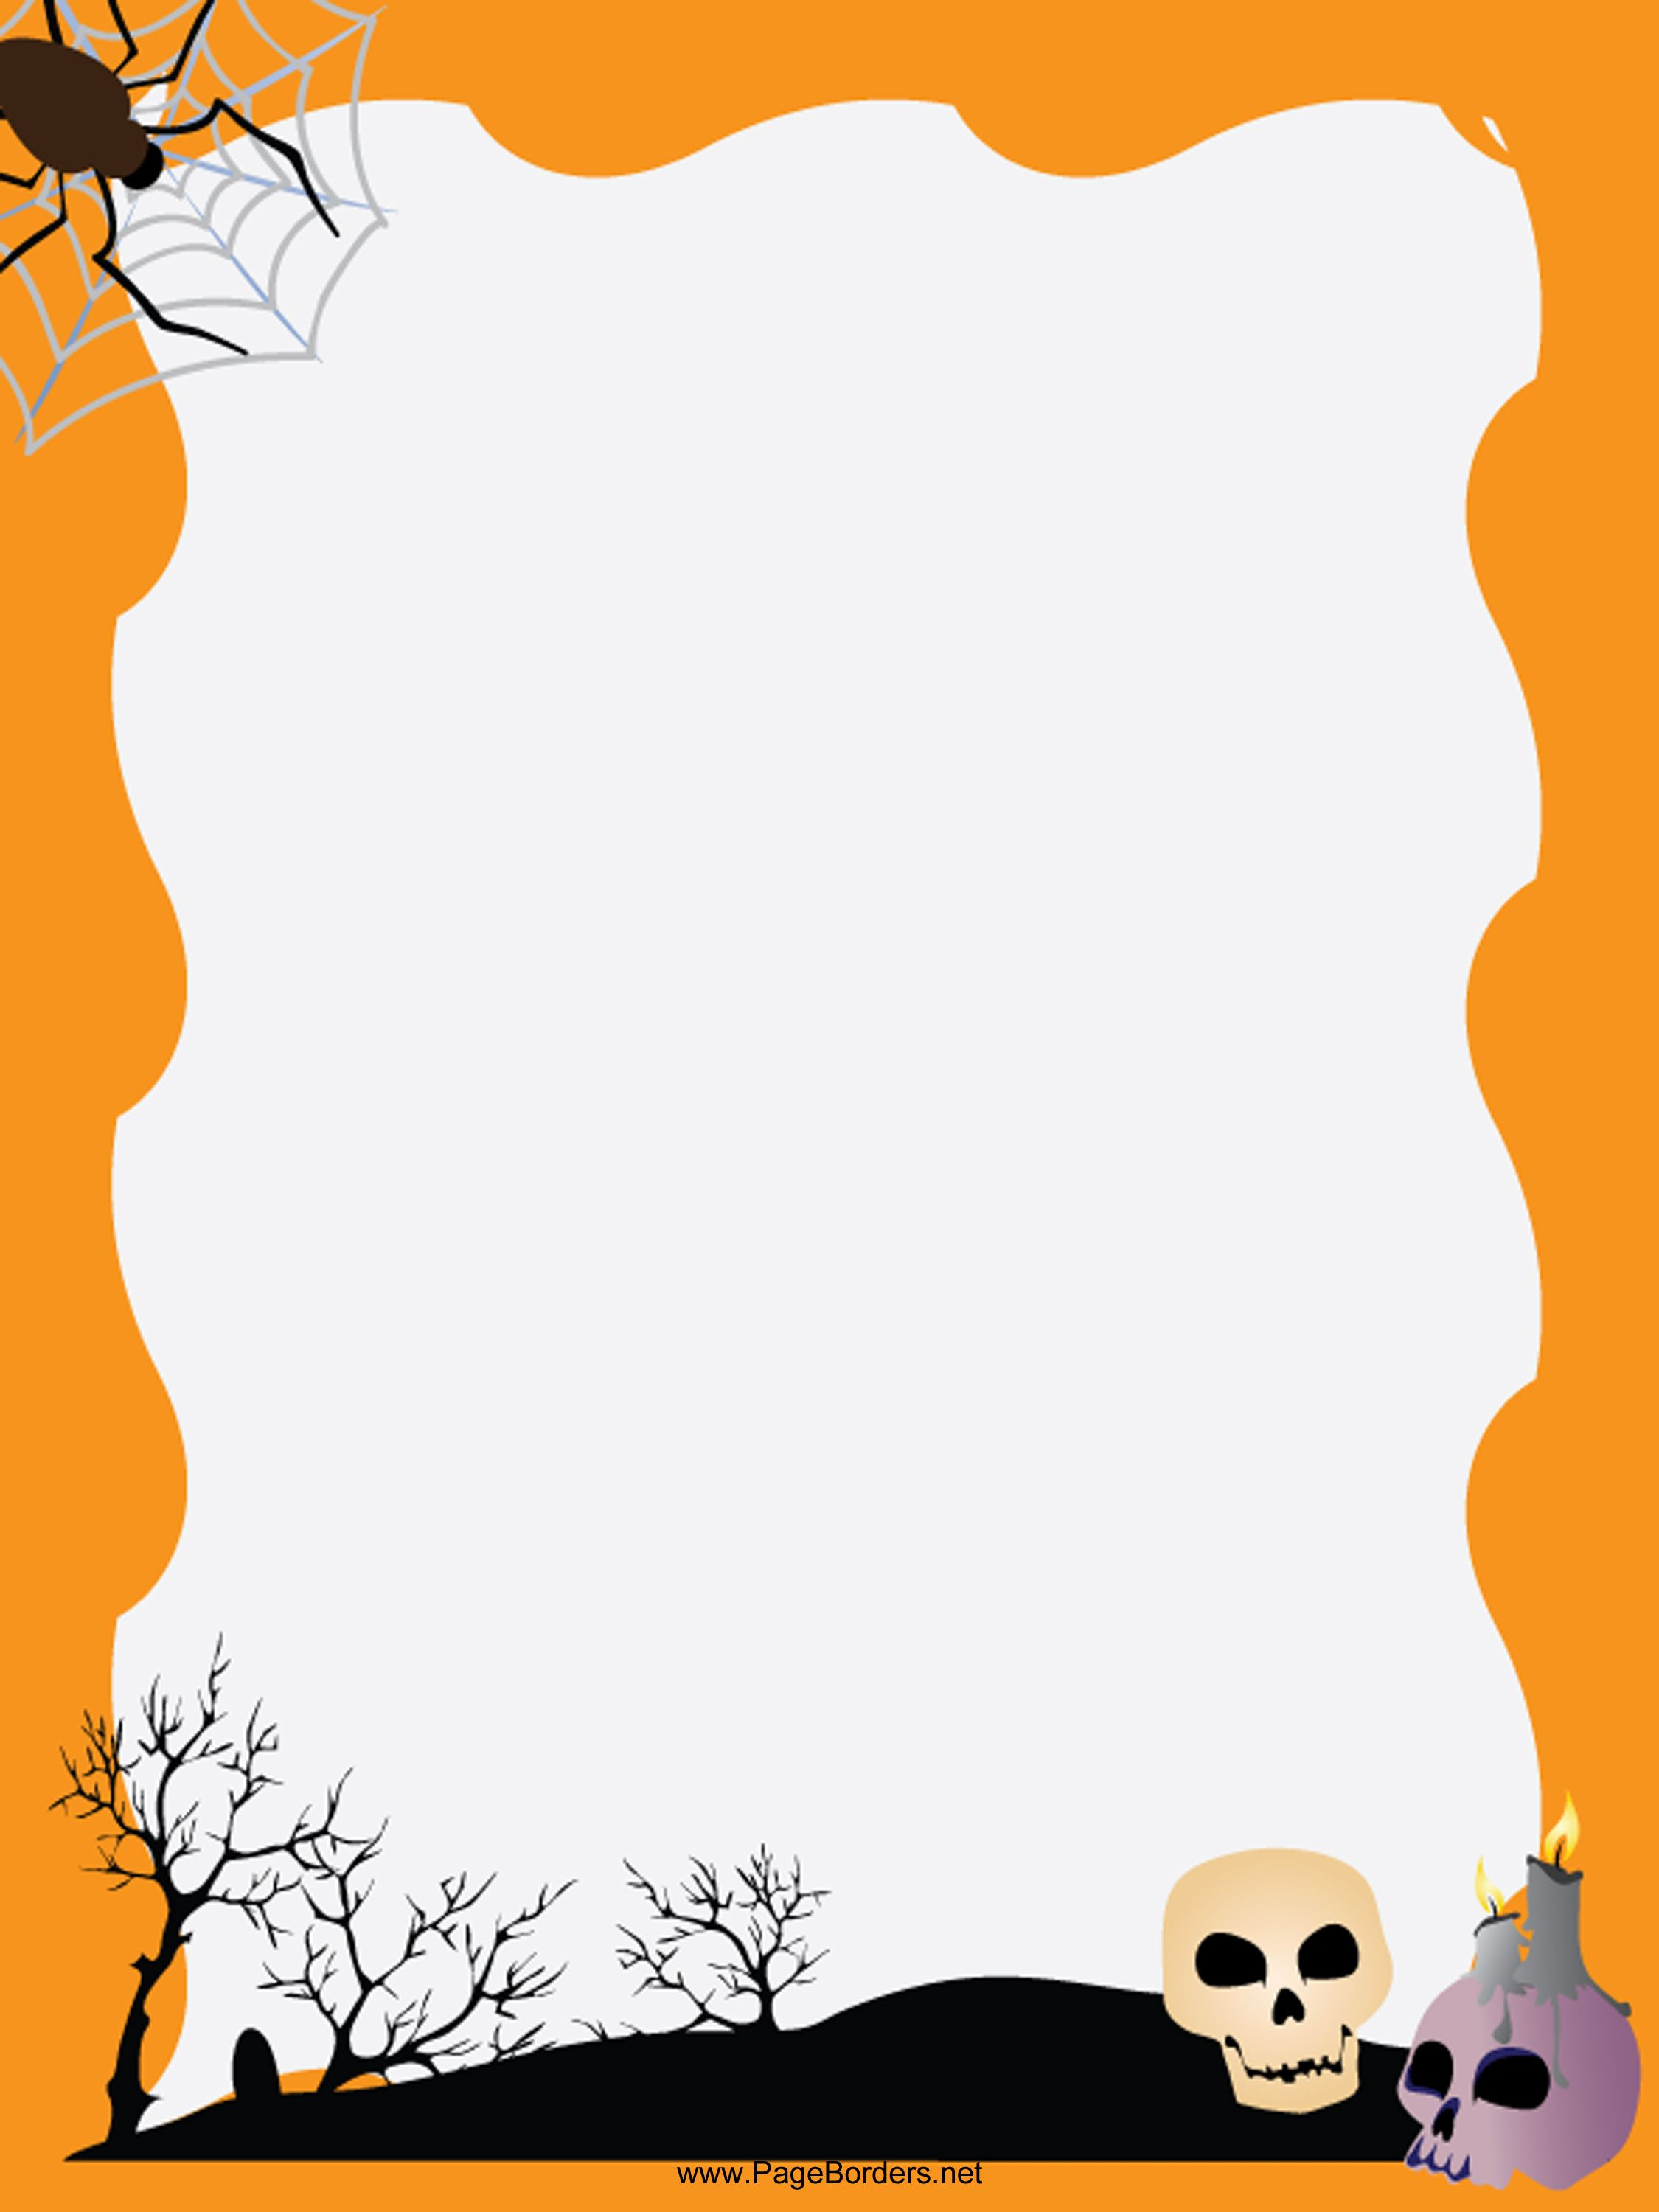 Pinerica Hall On Smash Books | Pinterest | Halloween Borders - Free Printable Halloween Stationery Borders